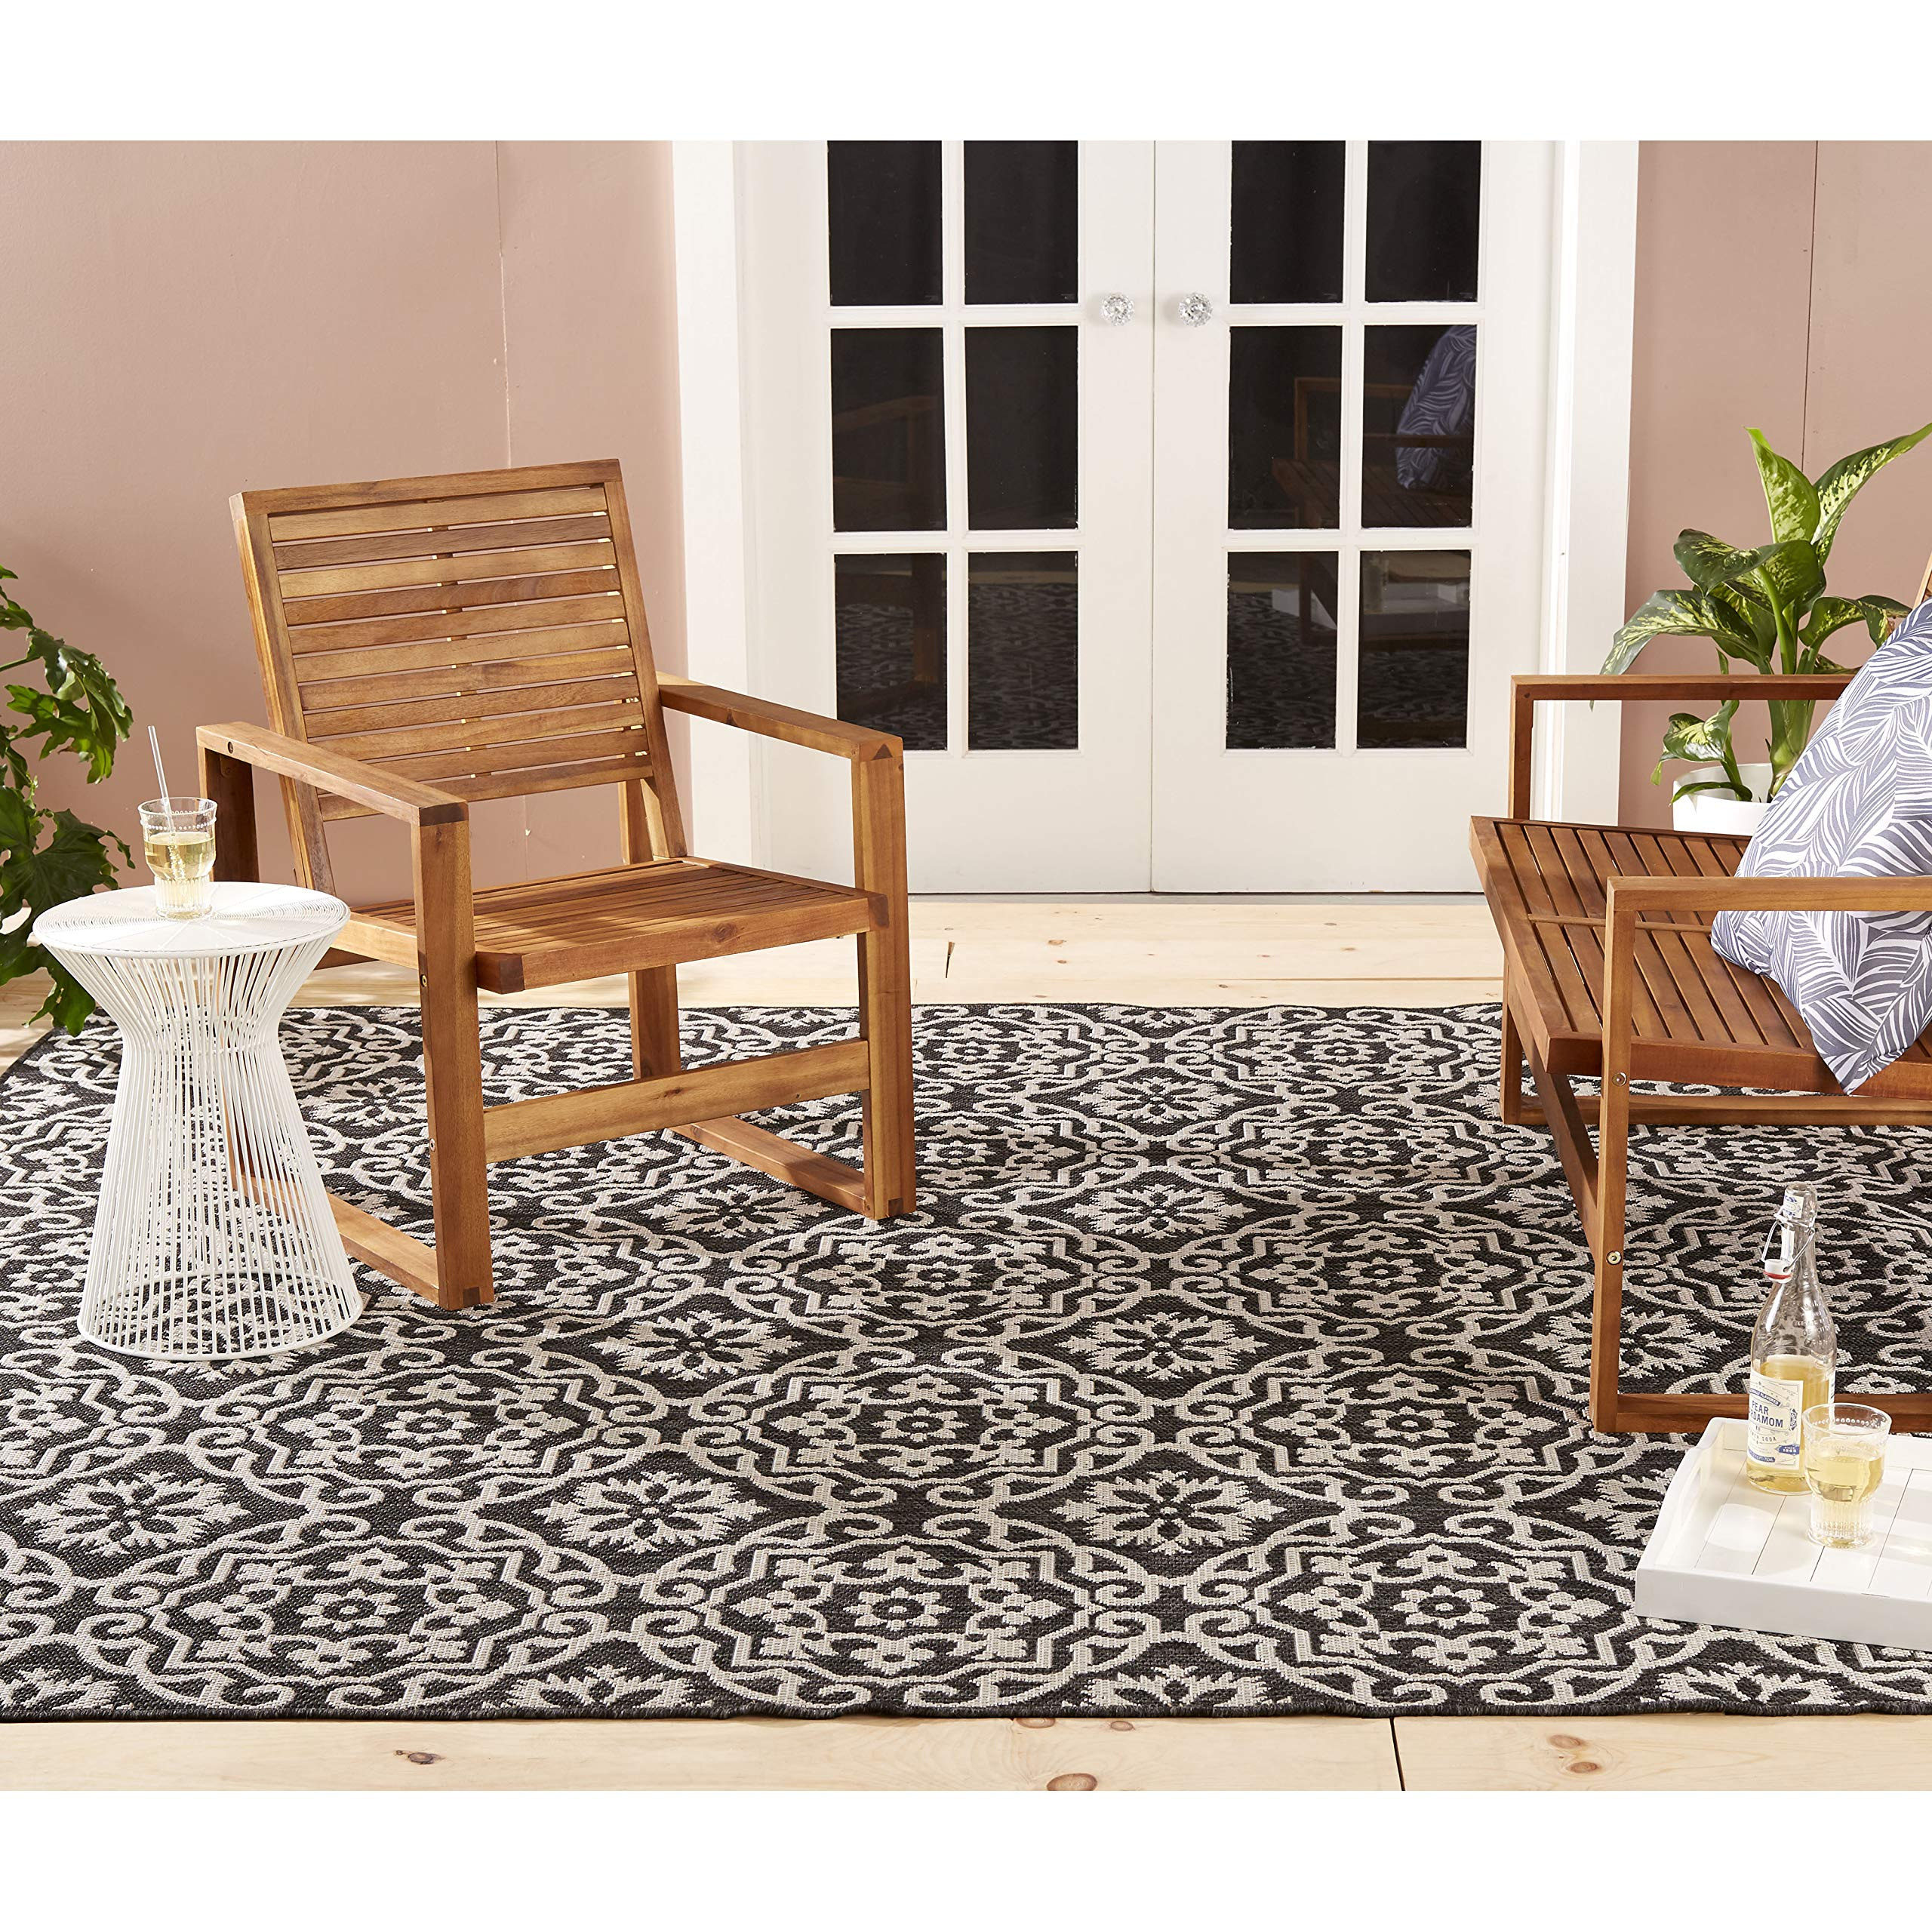 Home Dynamix Nicole Miller Patio Country Danica 7'9'' x10'2 Indoor/Outdoor Area Rug Black/Gray